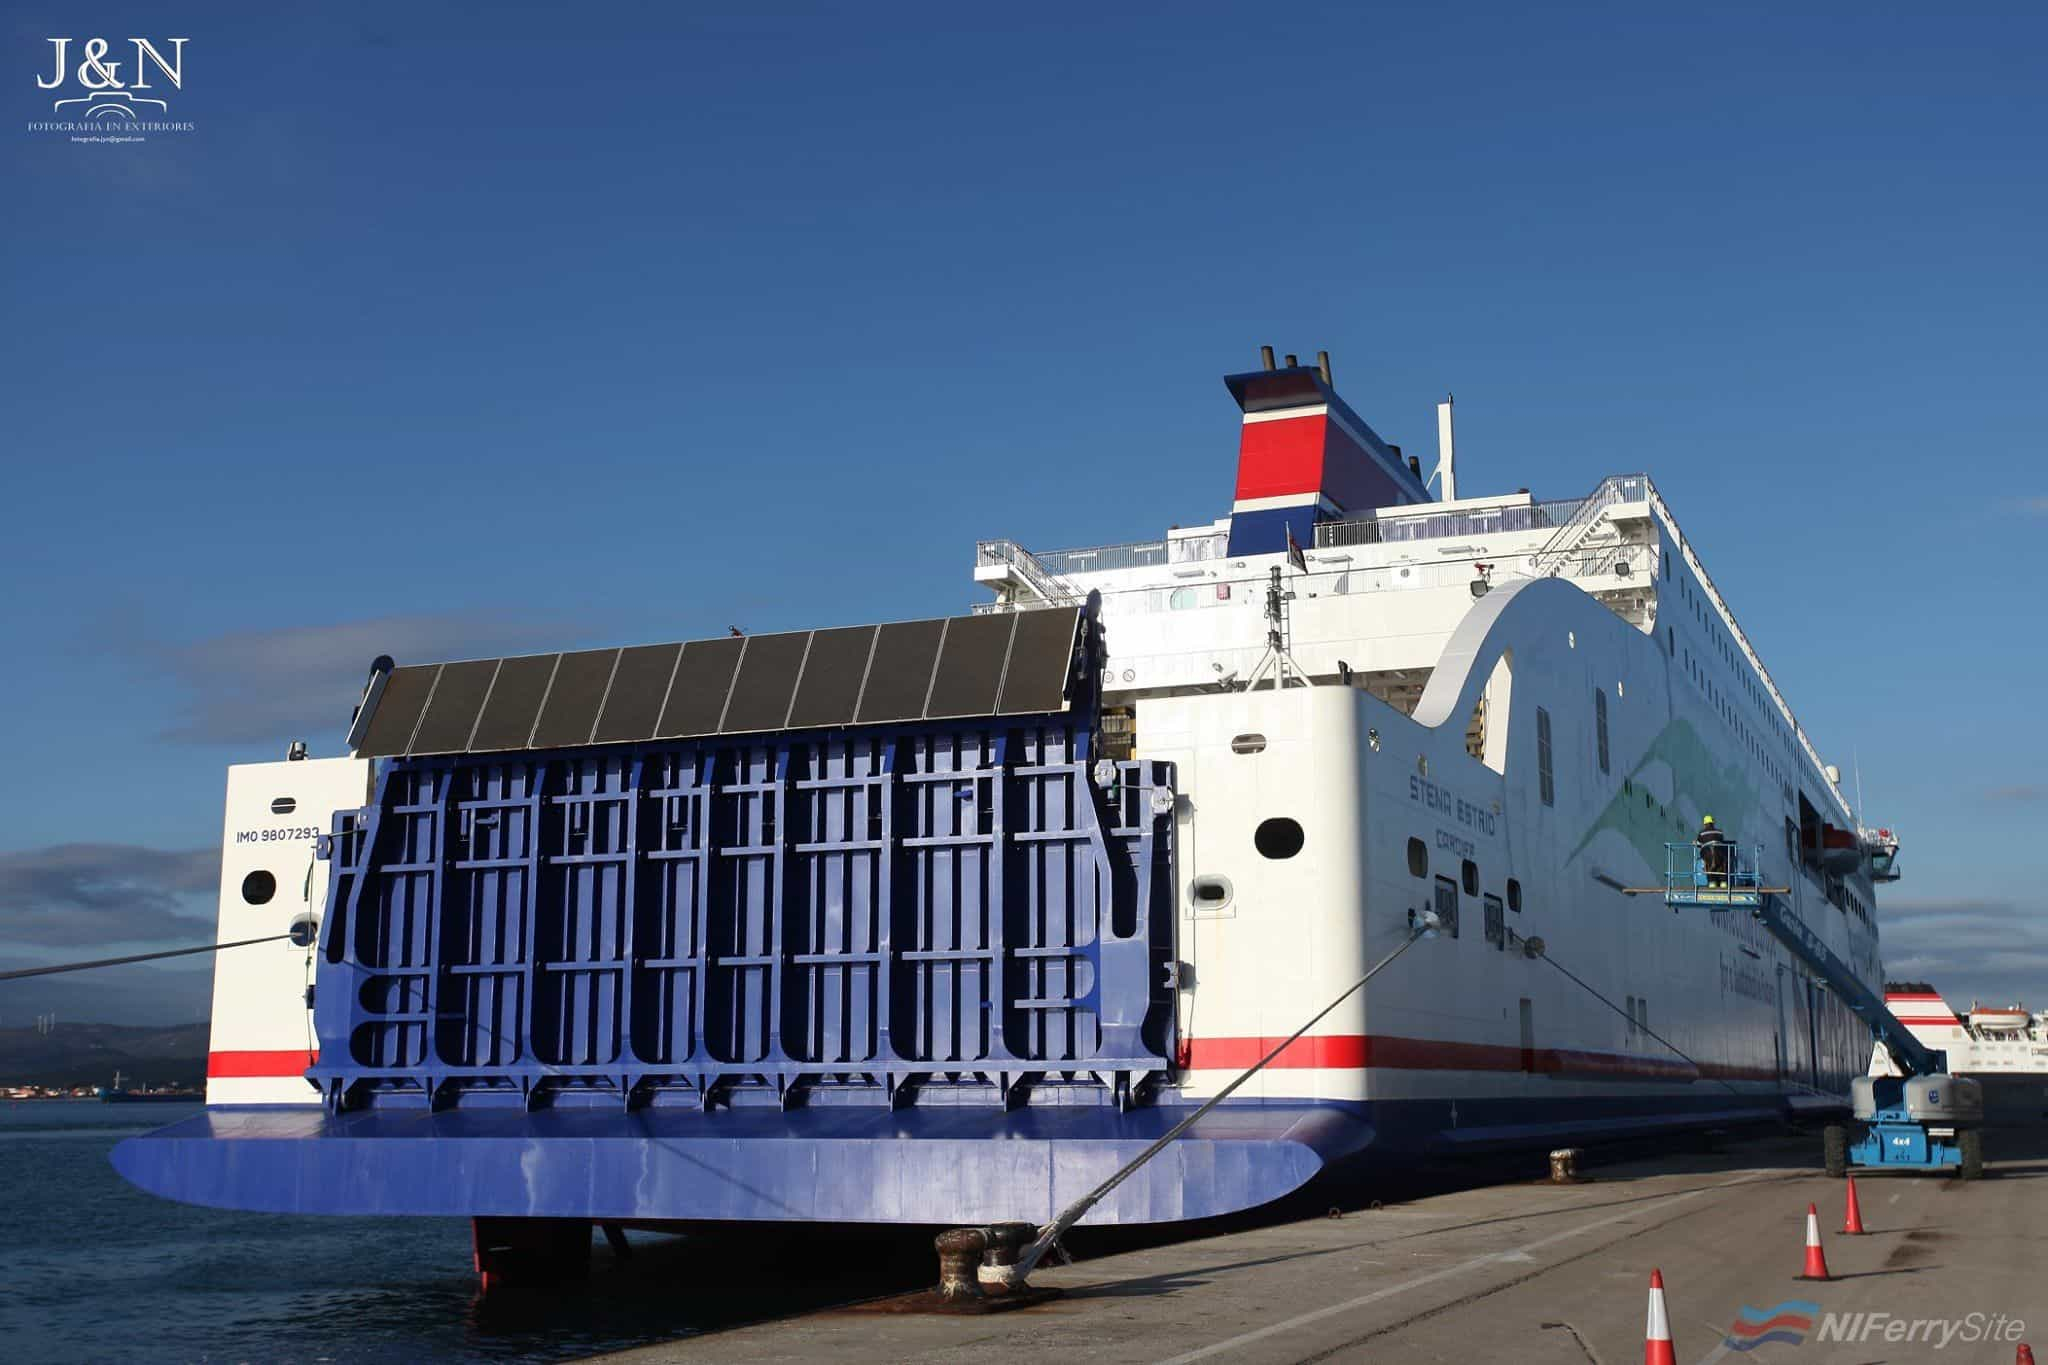 STENA ESTRID at Algeciras just prior to her port of registry being changed. Copyright © Juan G. Mata.